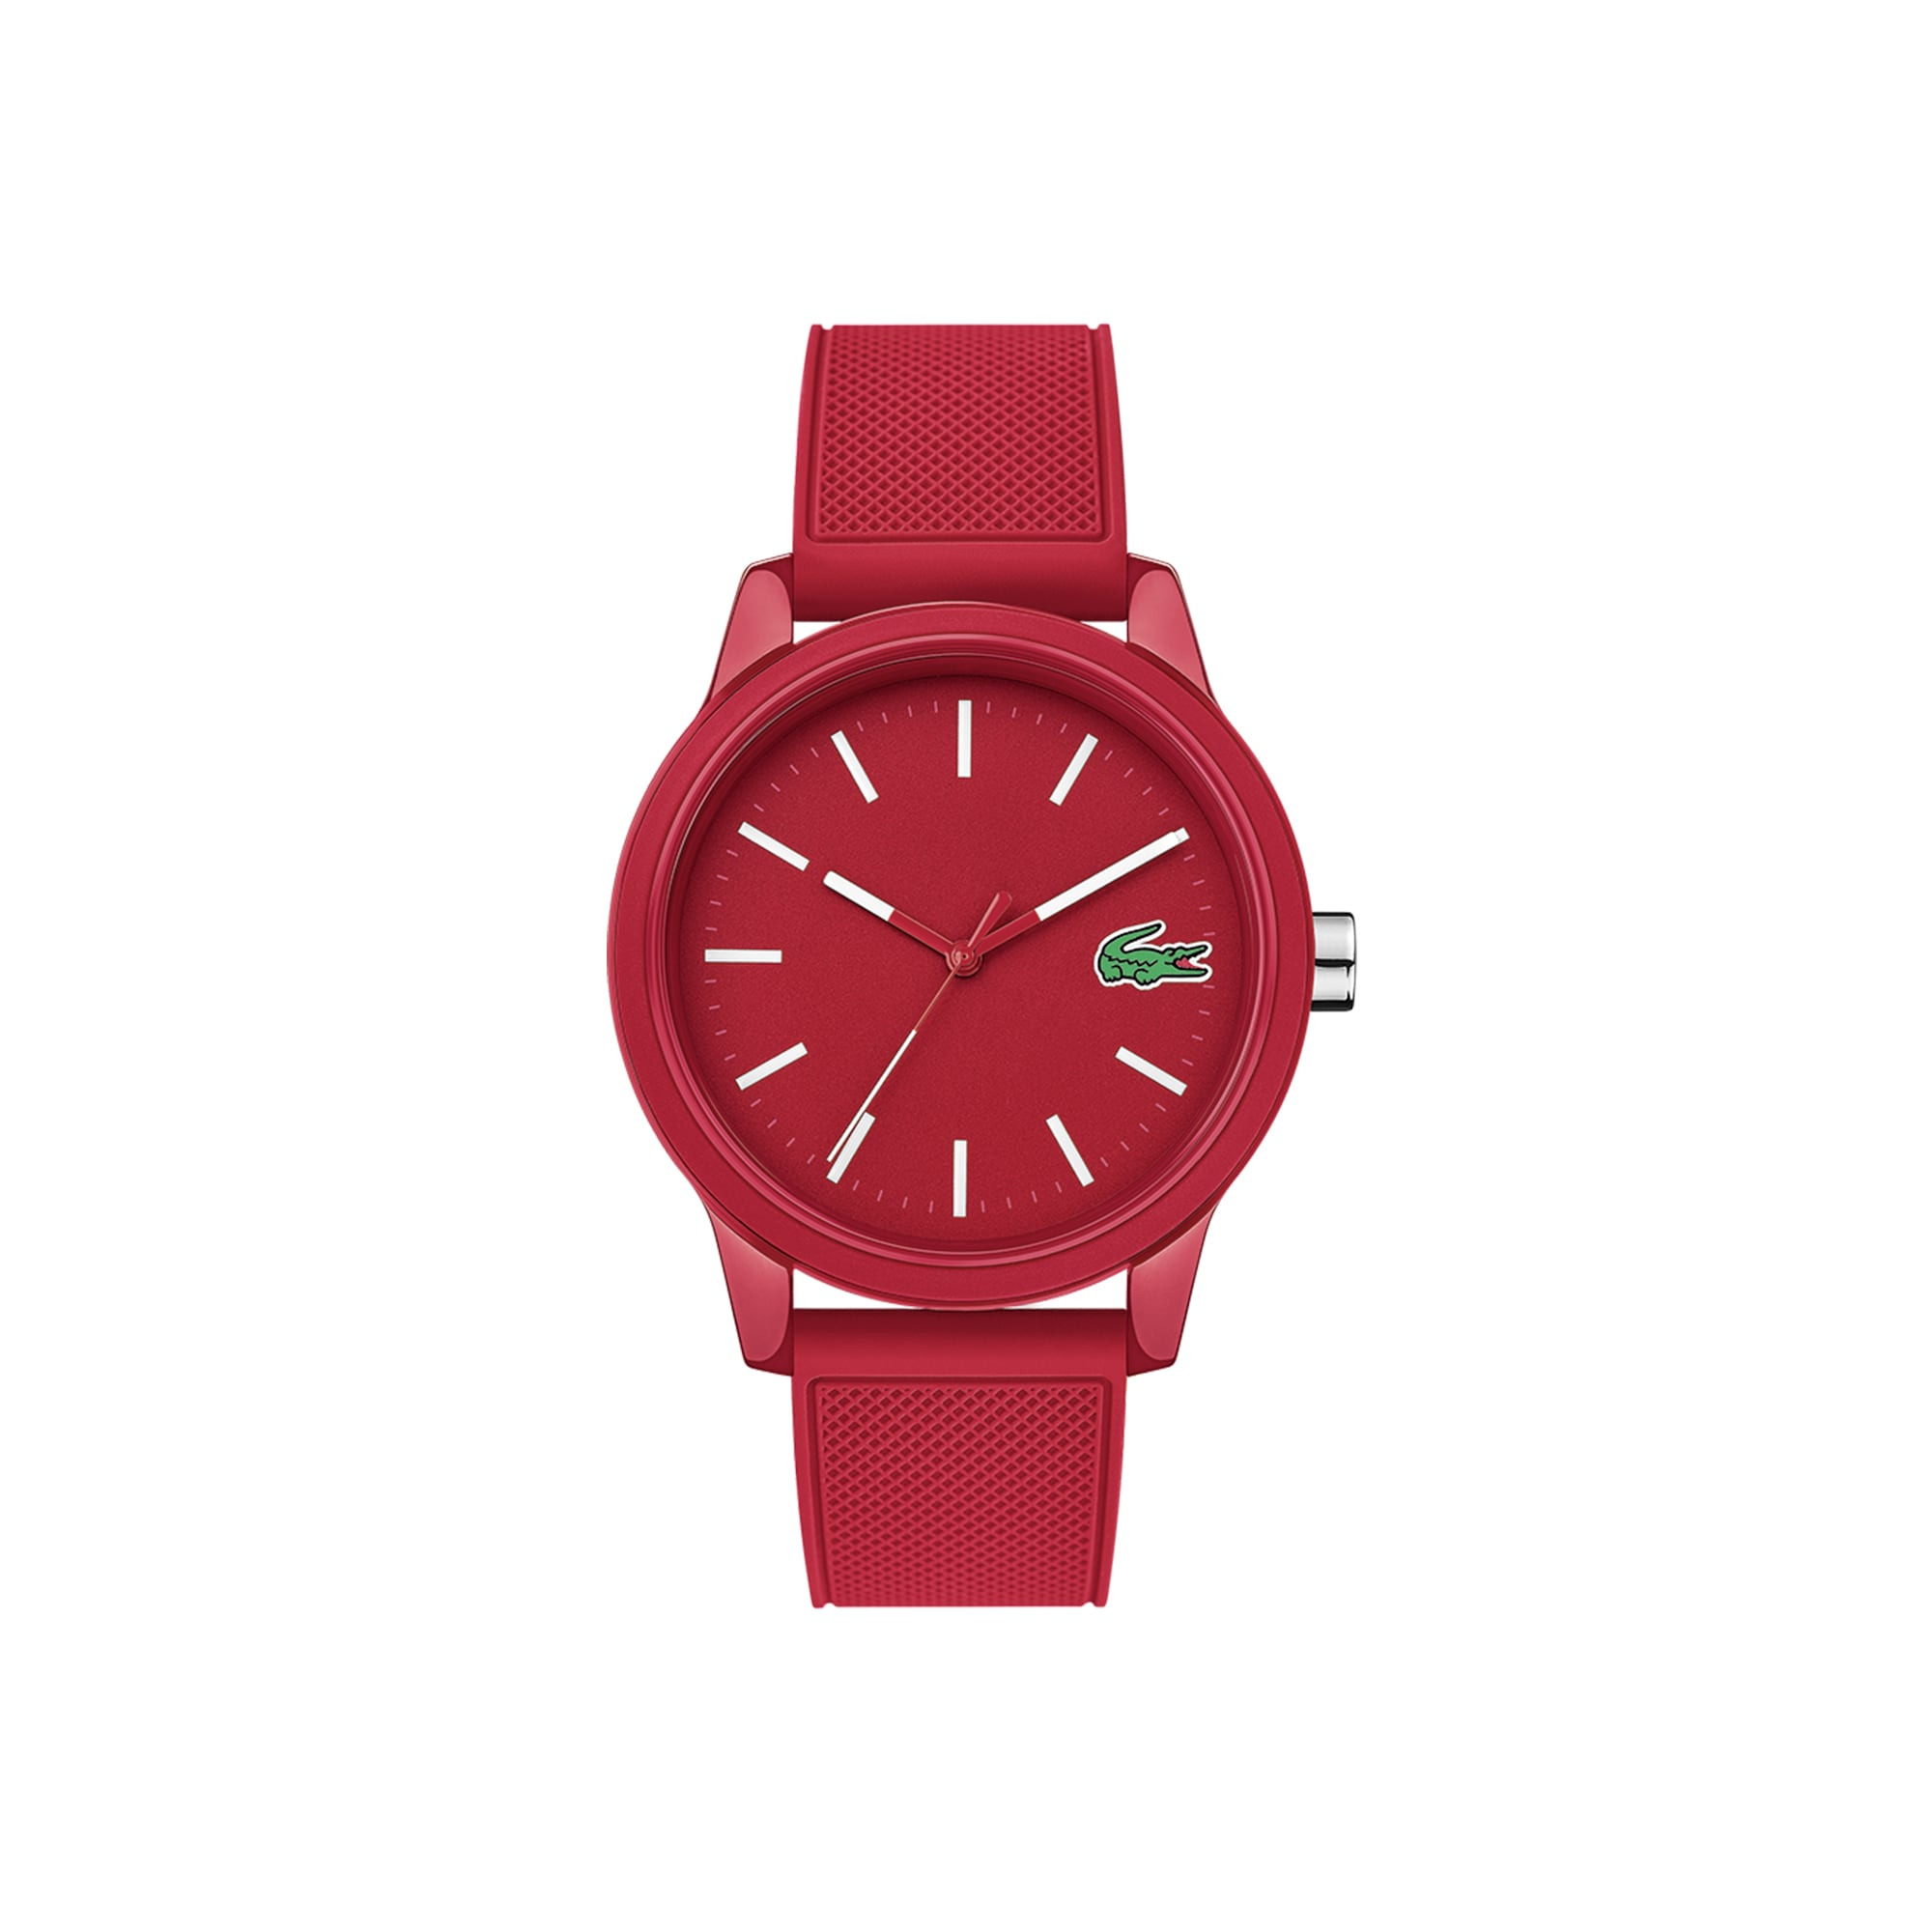 2df0b1063 Men's Lacoste 12.12 Watch with Green Silicone Strap. $95.00. Sport Edition